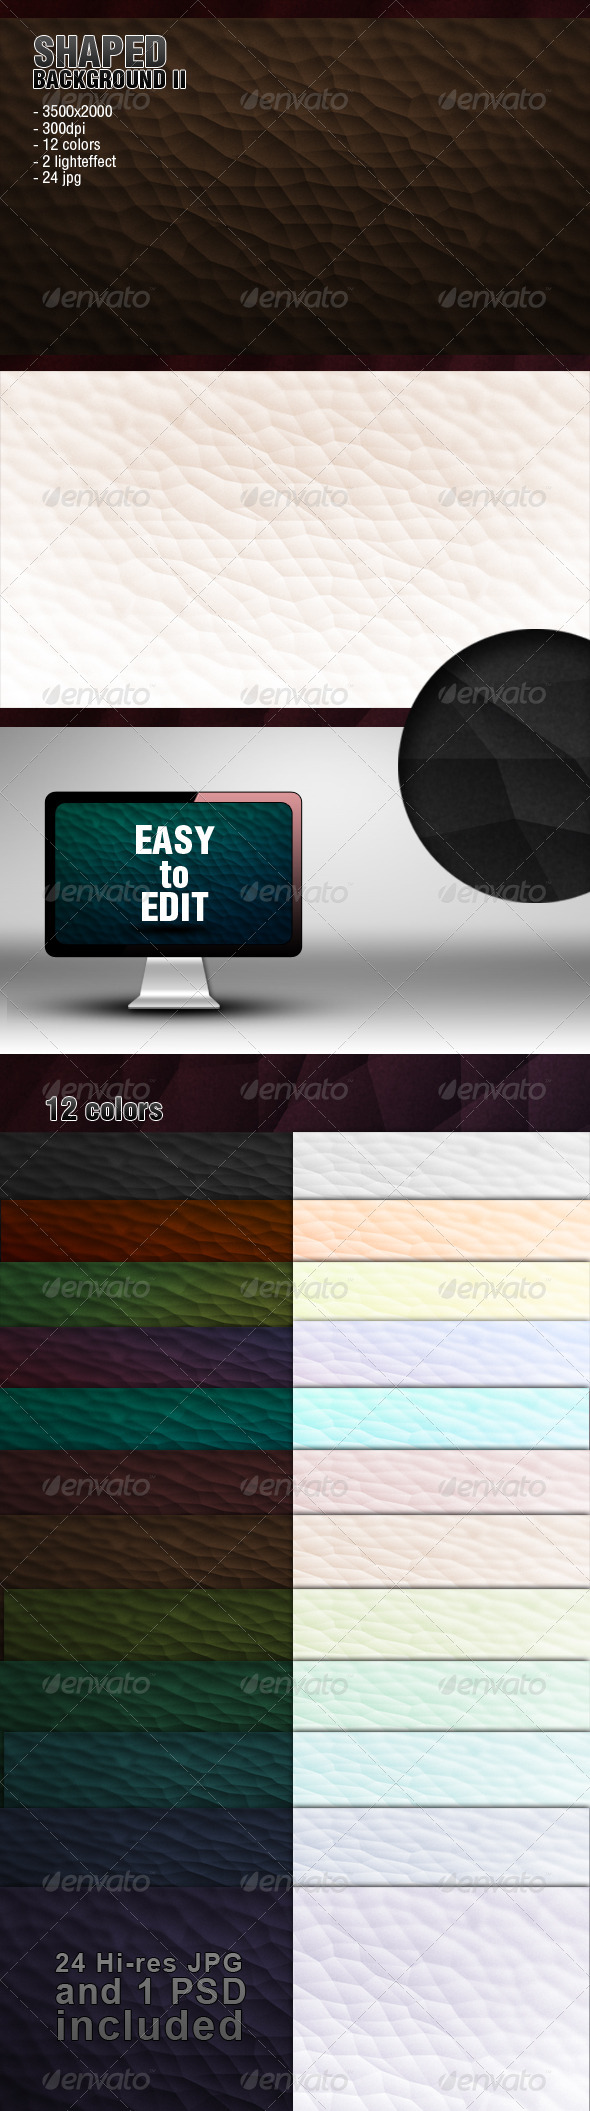 GraphicRiver Shaped Background 2 4297095